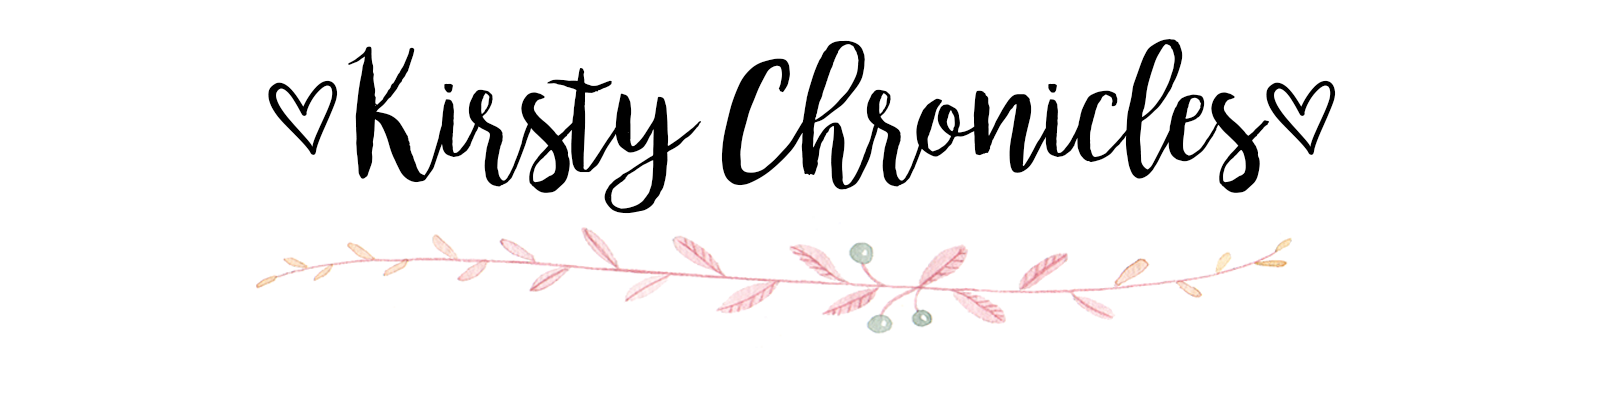 Kirsty Chronicles | The Book Blog